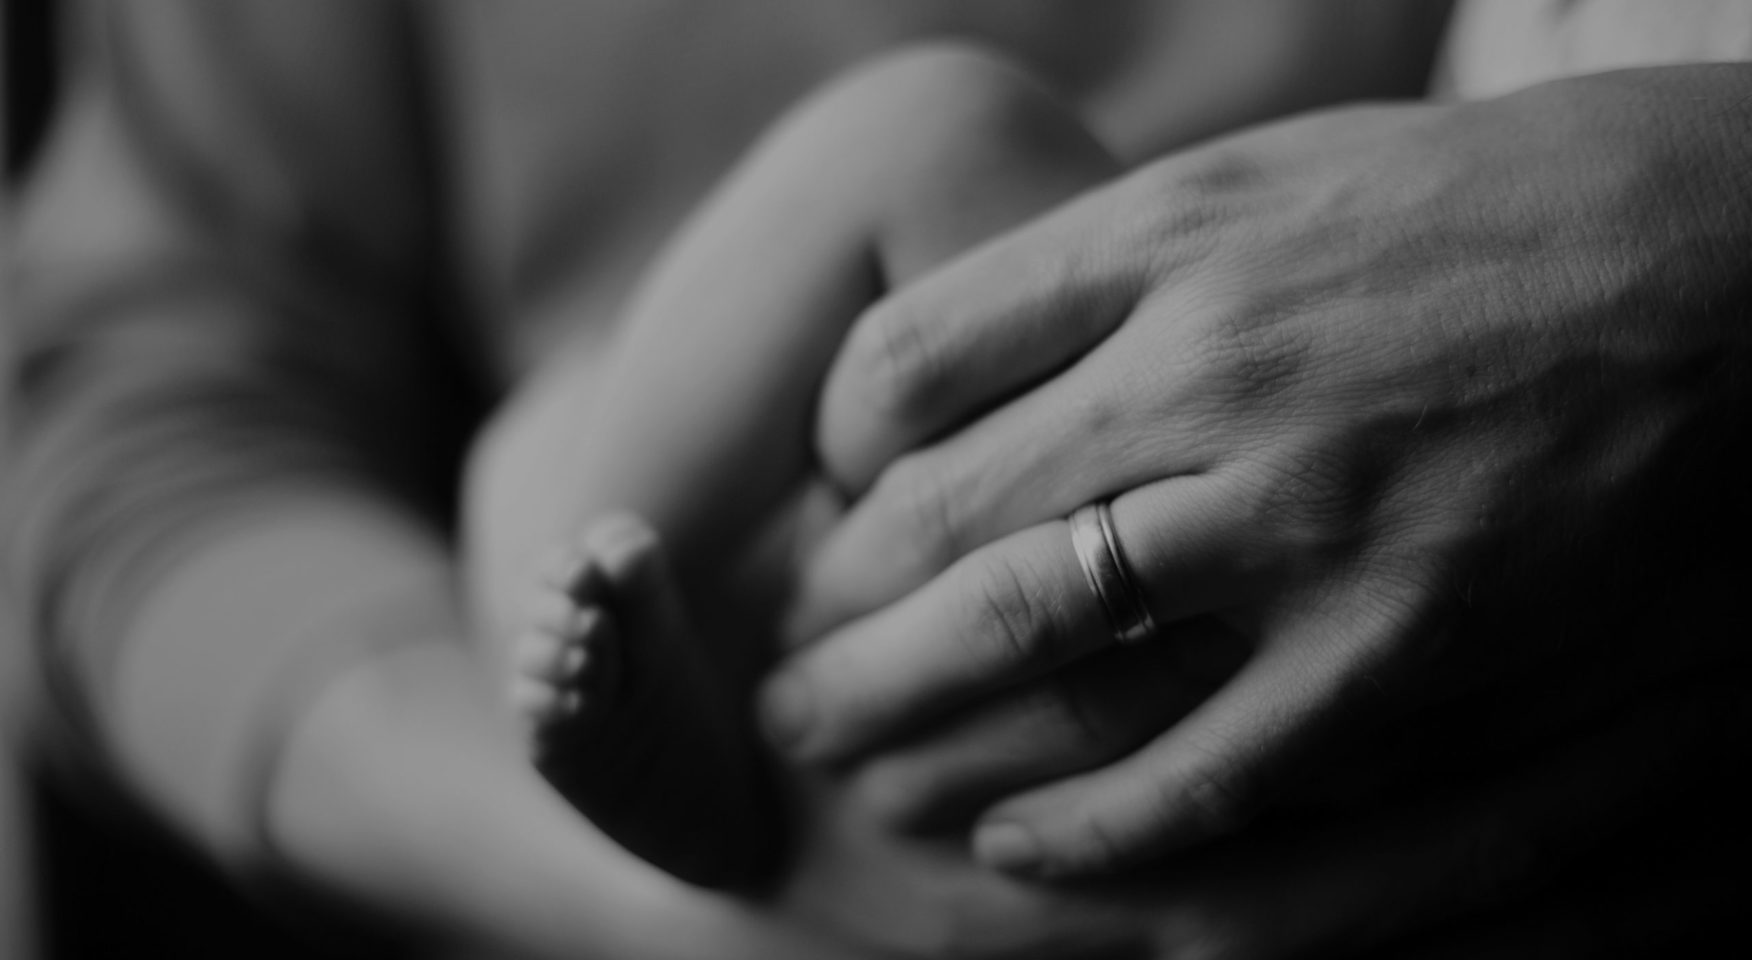 Adult holding baby closeup of hands and feet